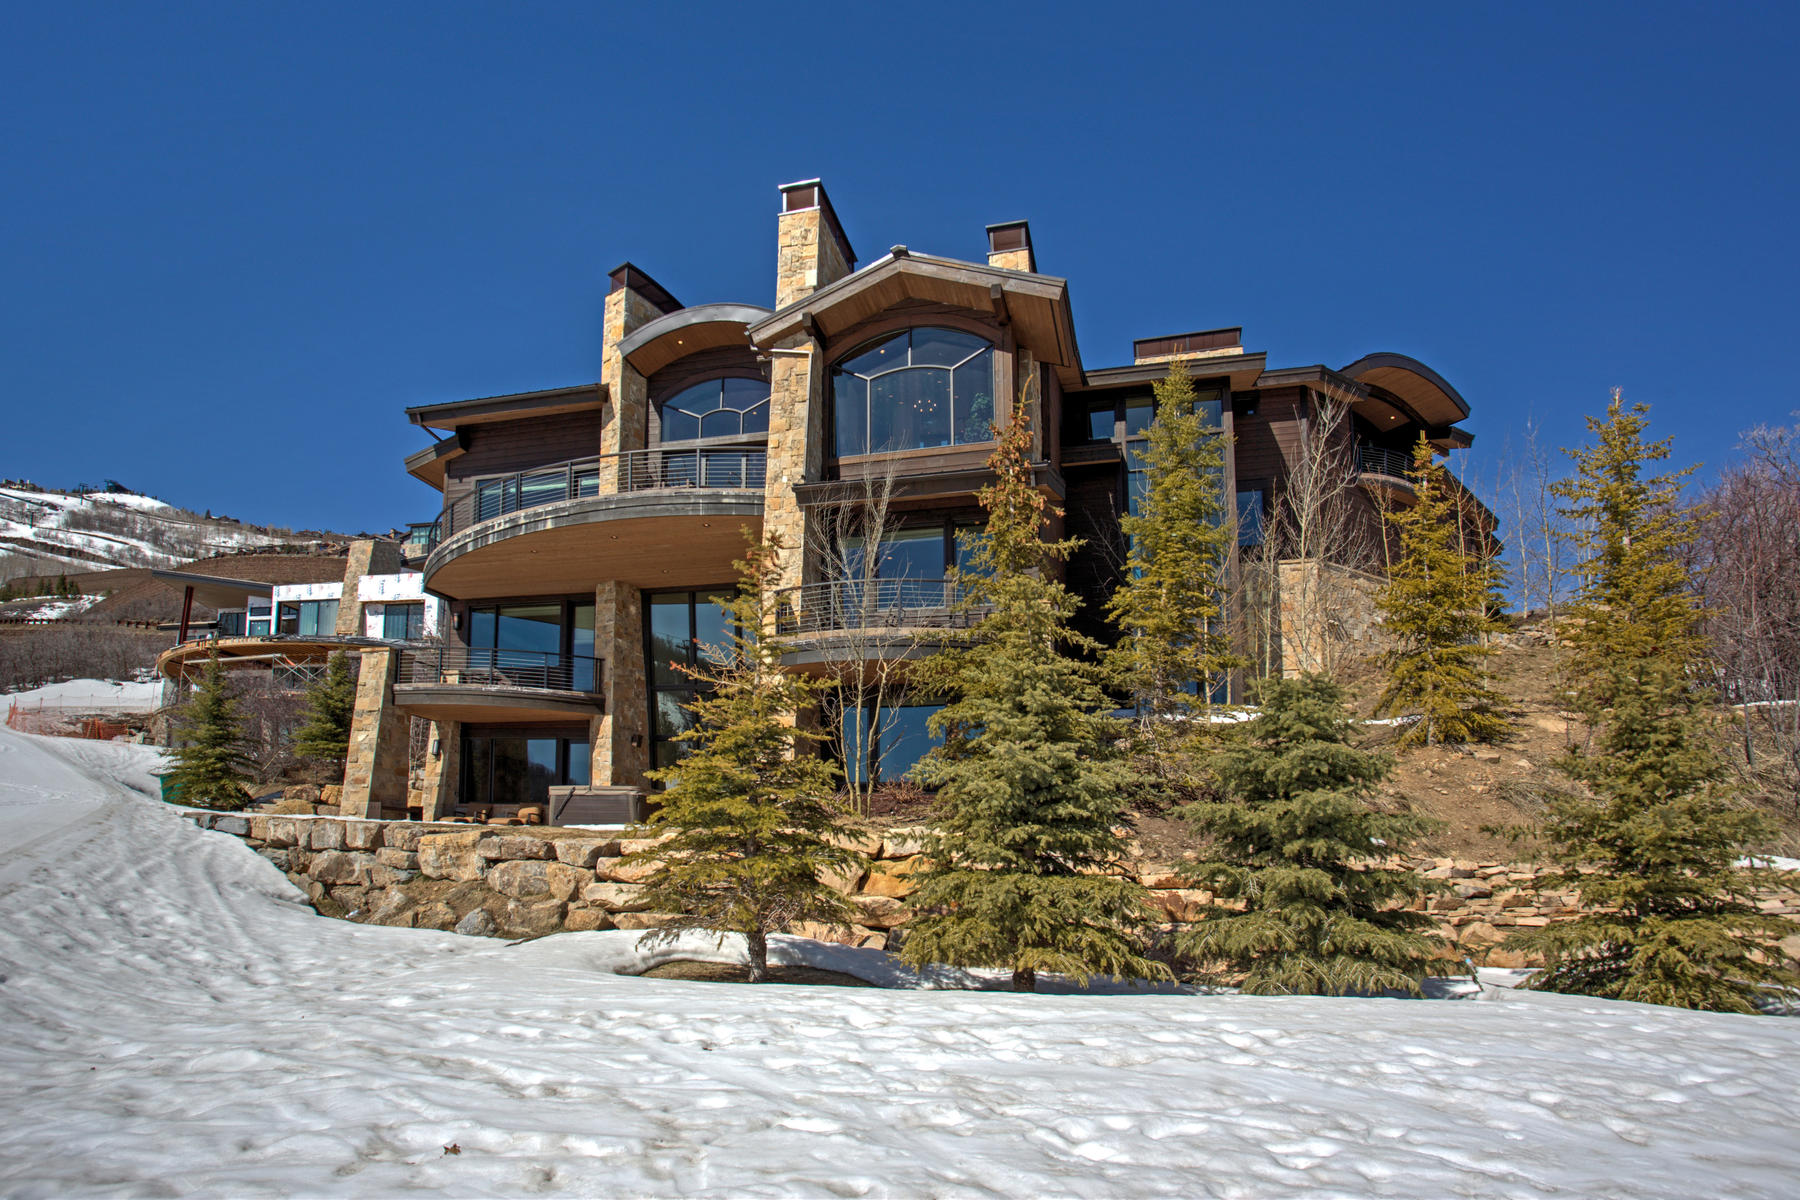 一戸建て のために 売買 アット Spectacular Turnkey Custom Home with Stunning Views protected by Open Space 2997 Deer Crest Estates Dr Park City, ユタ, 84060 アメリカ合衆国